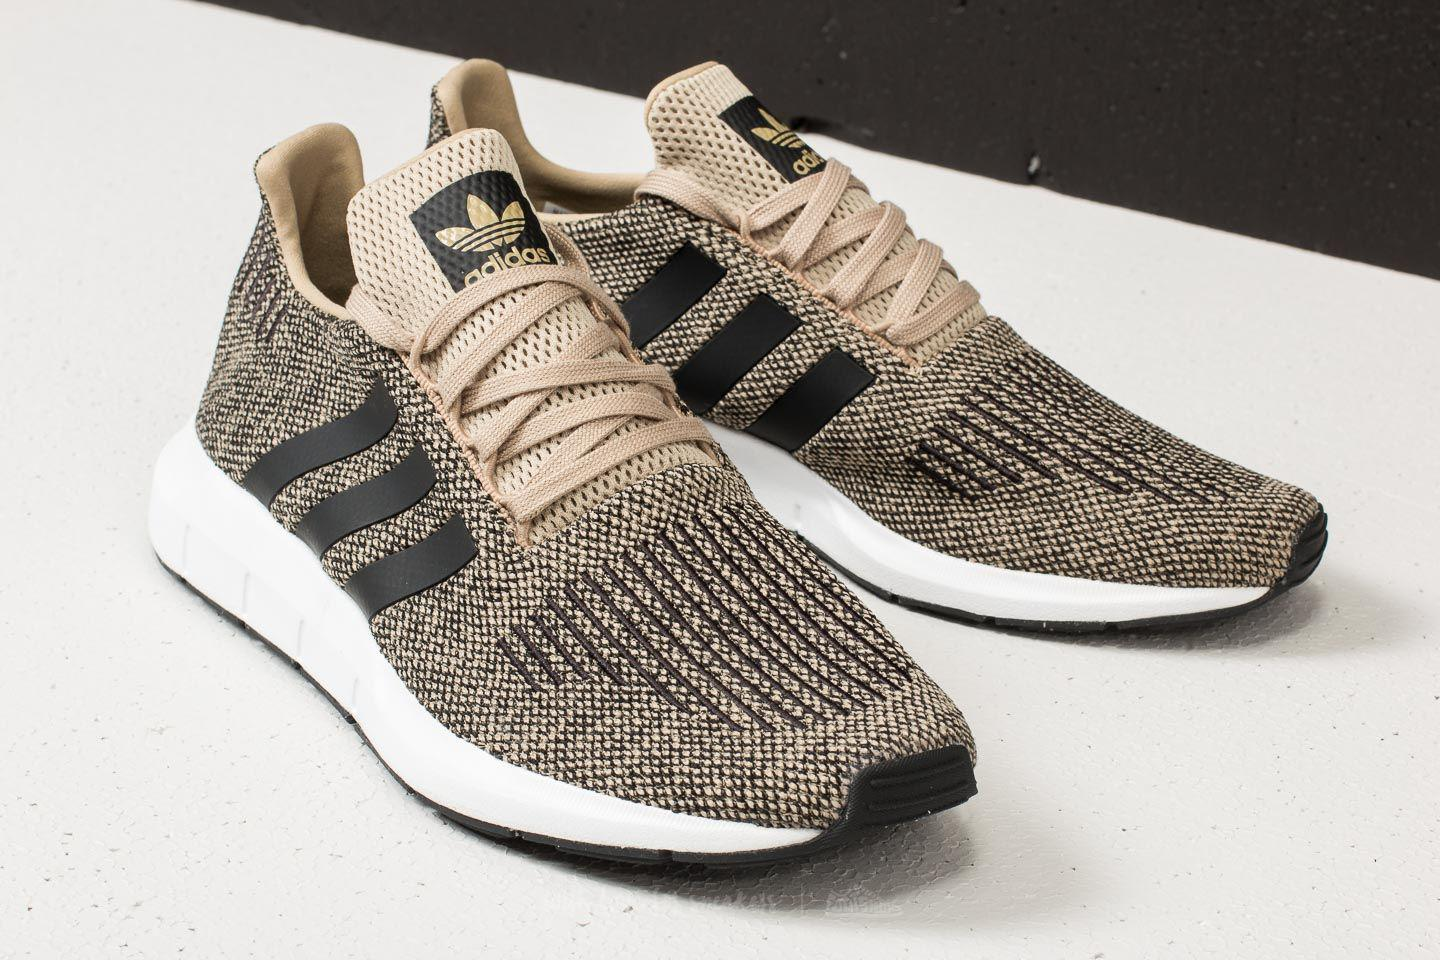 deda3e6c7ab Lyst - adidas Originals Adidas Swift Run Raw Gold  Core Black  Ftw ...